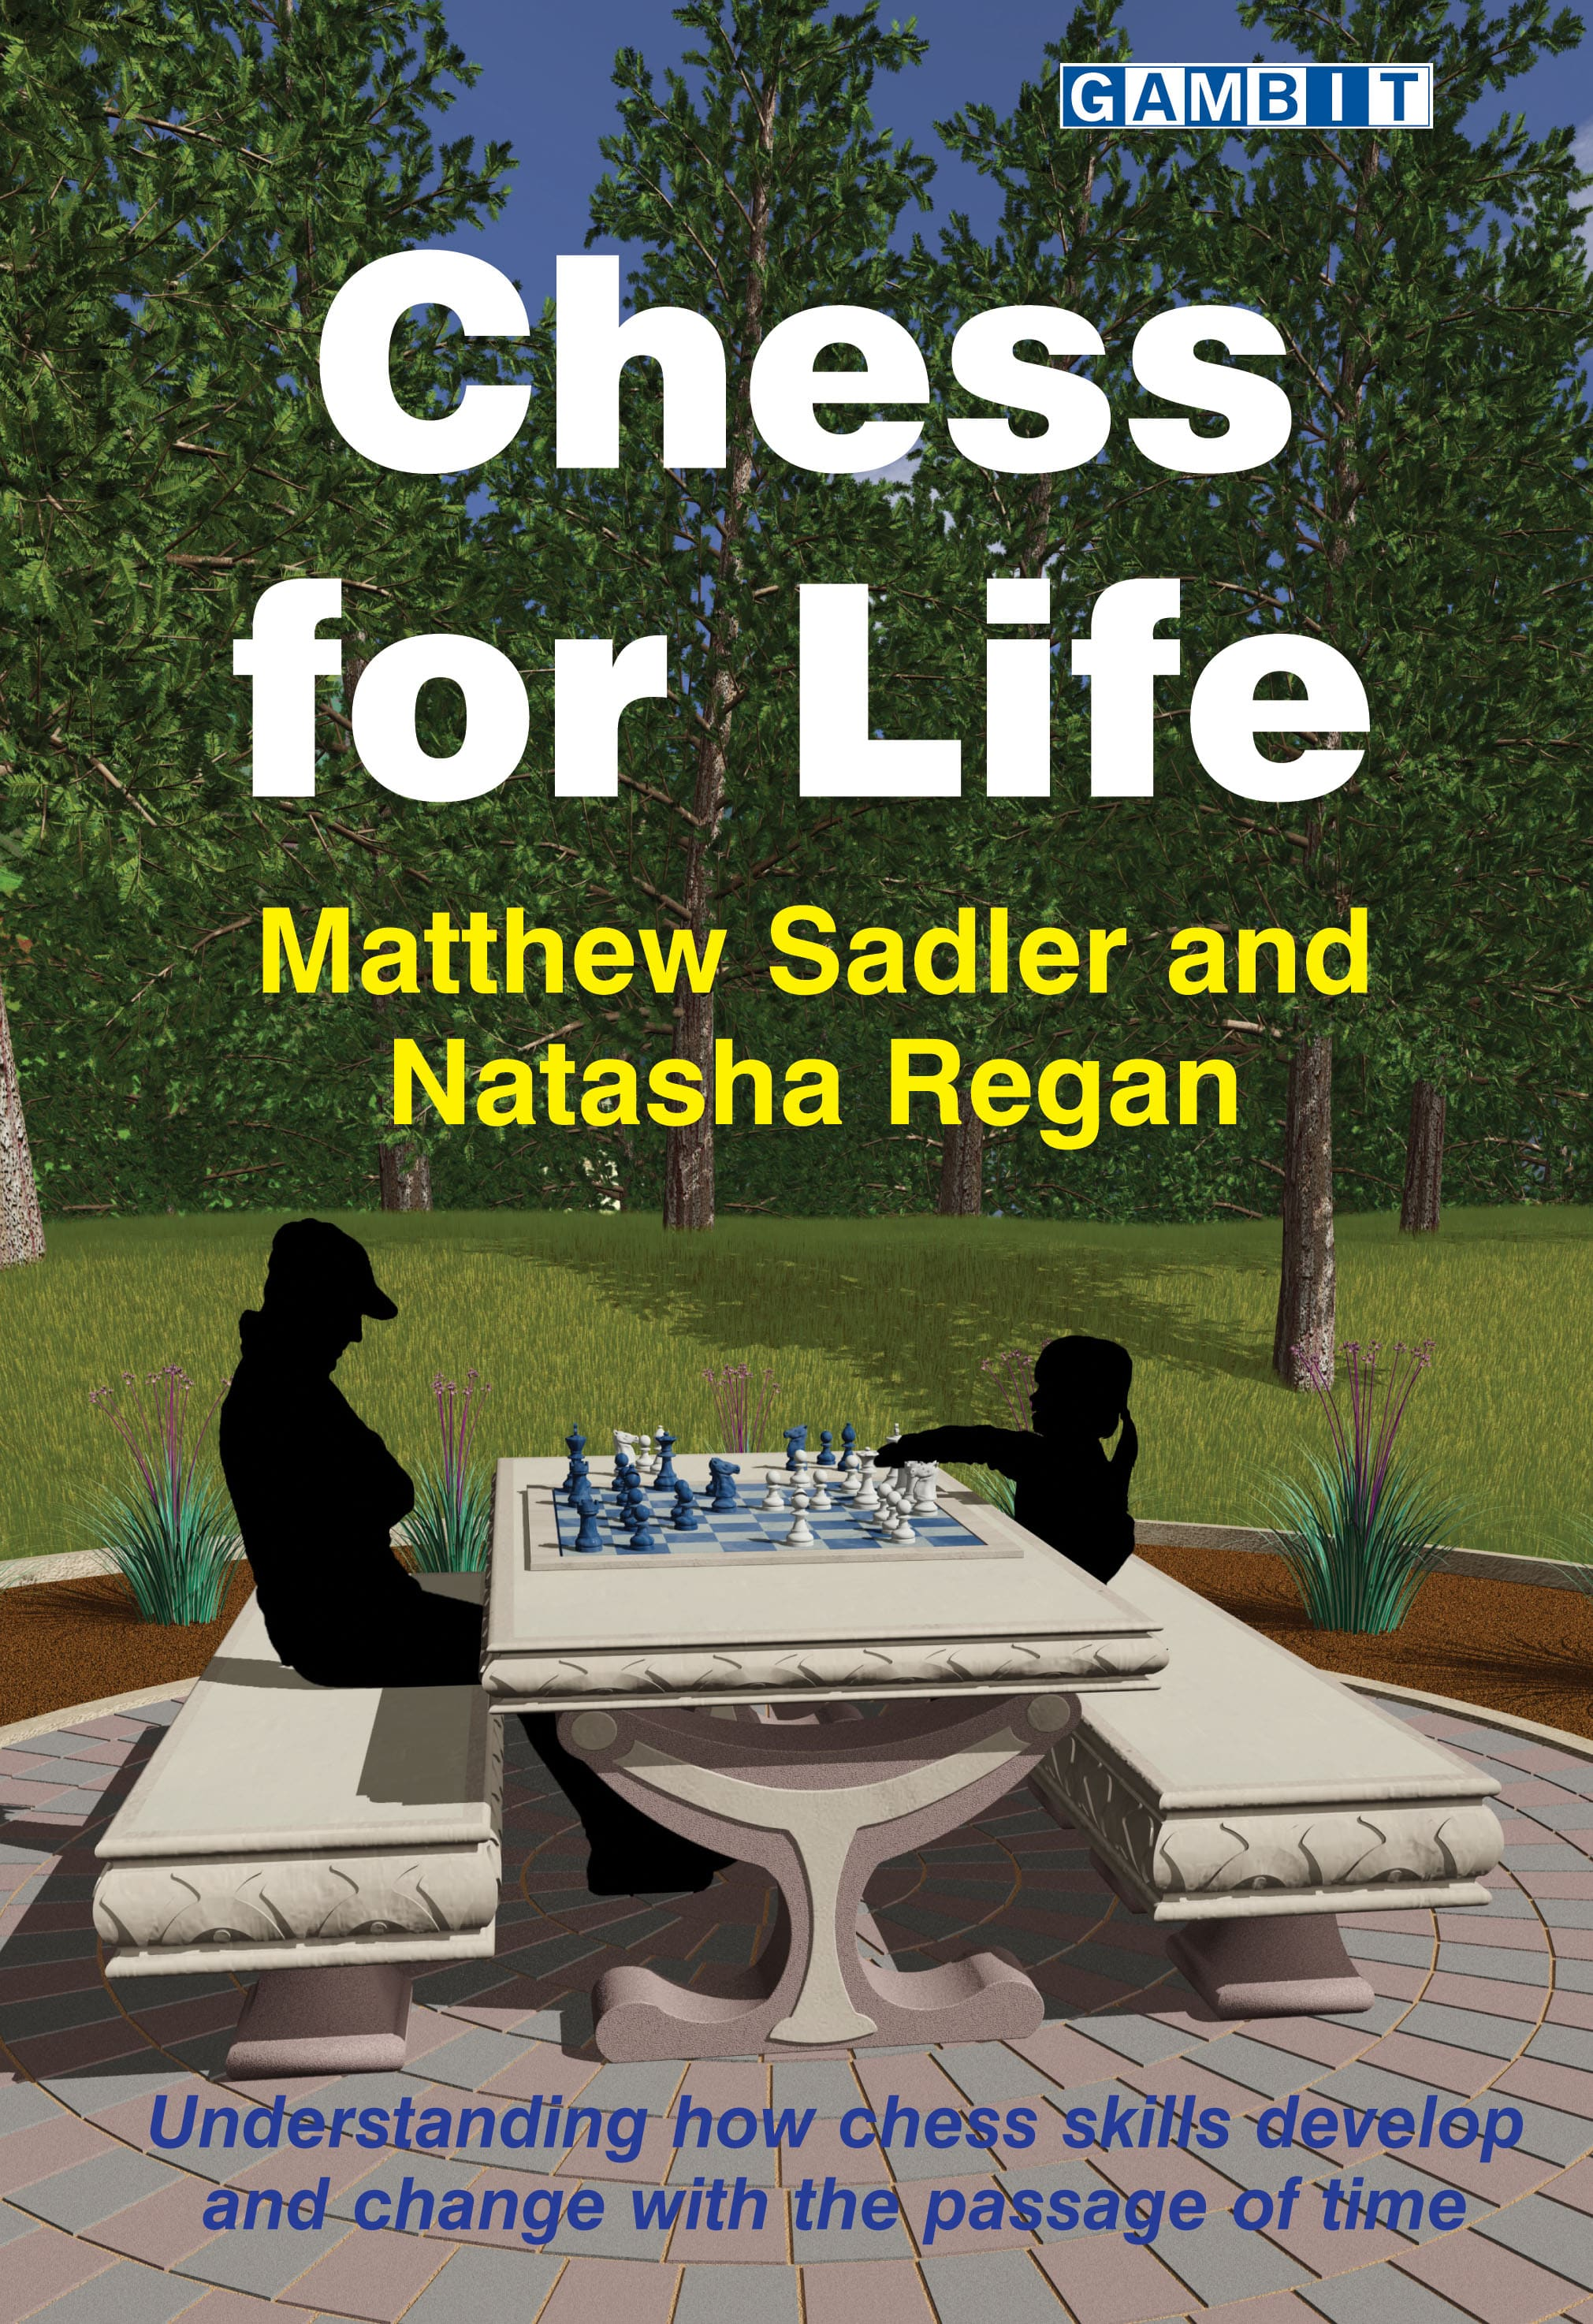 Chess for Life, Matthew Sadler Chess, Natasha Regan